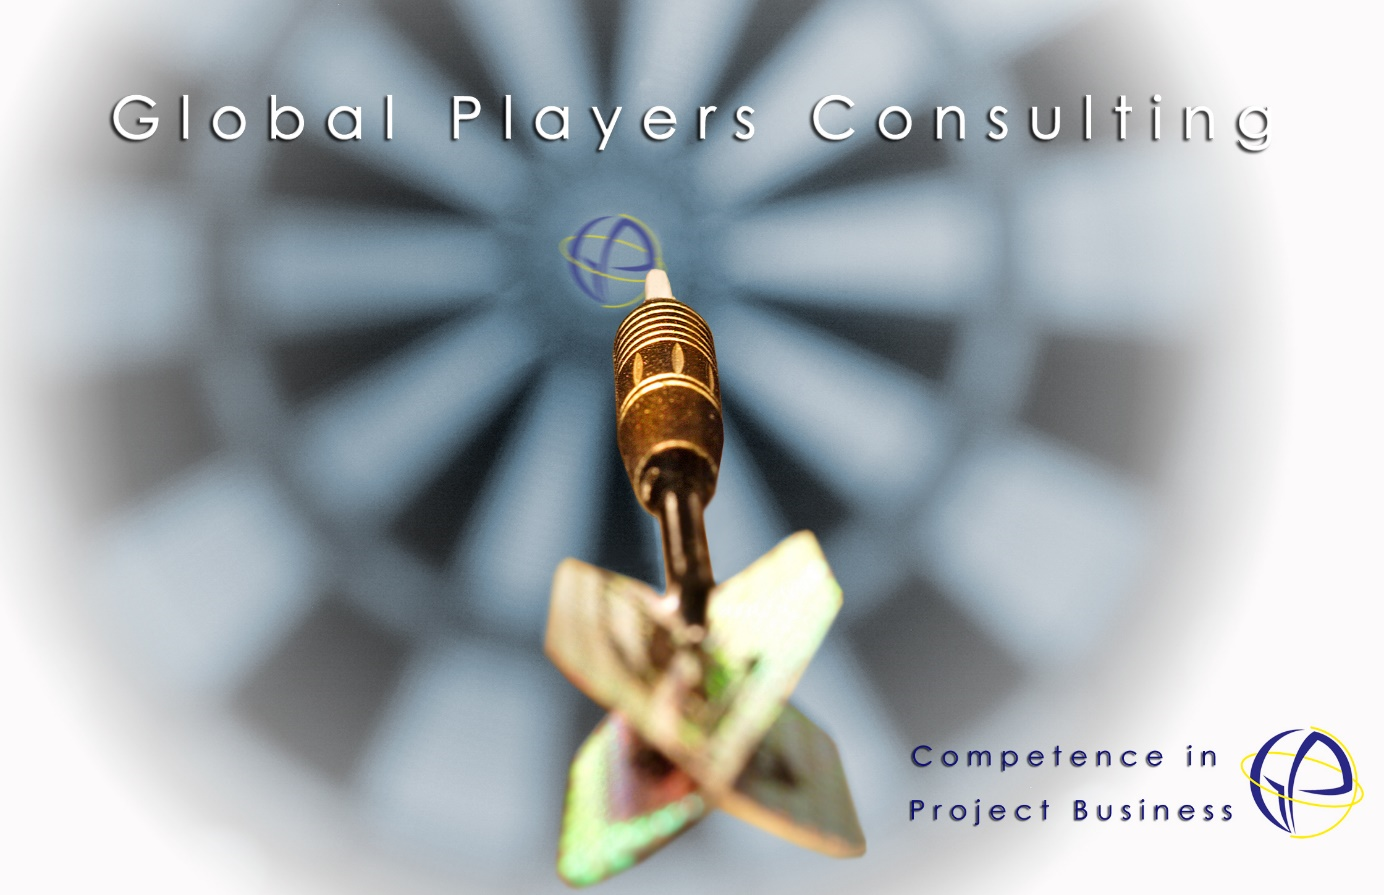 Global Players Consulting - Competence in Project Business